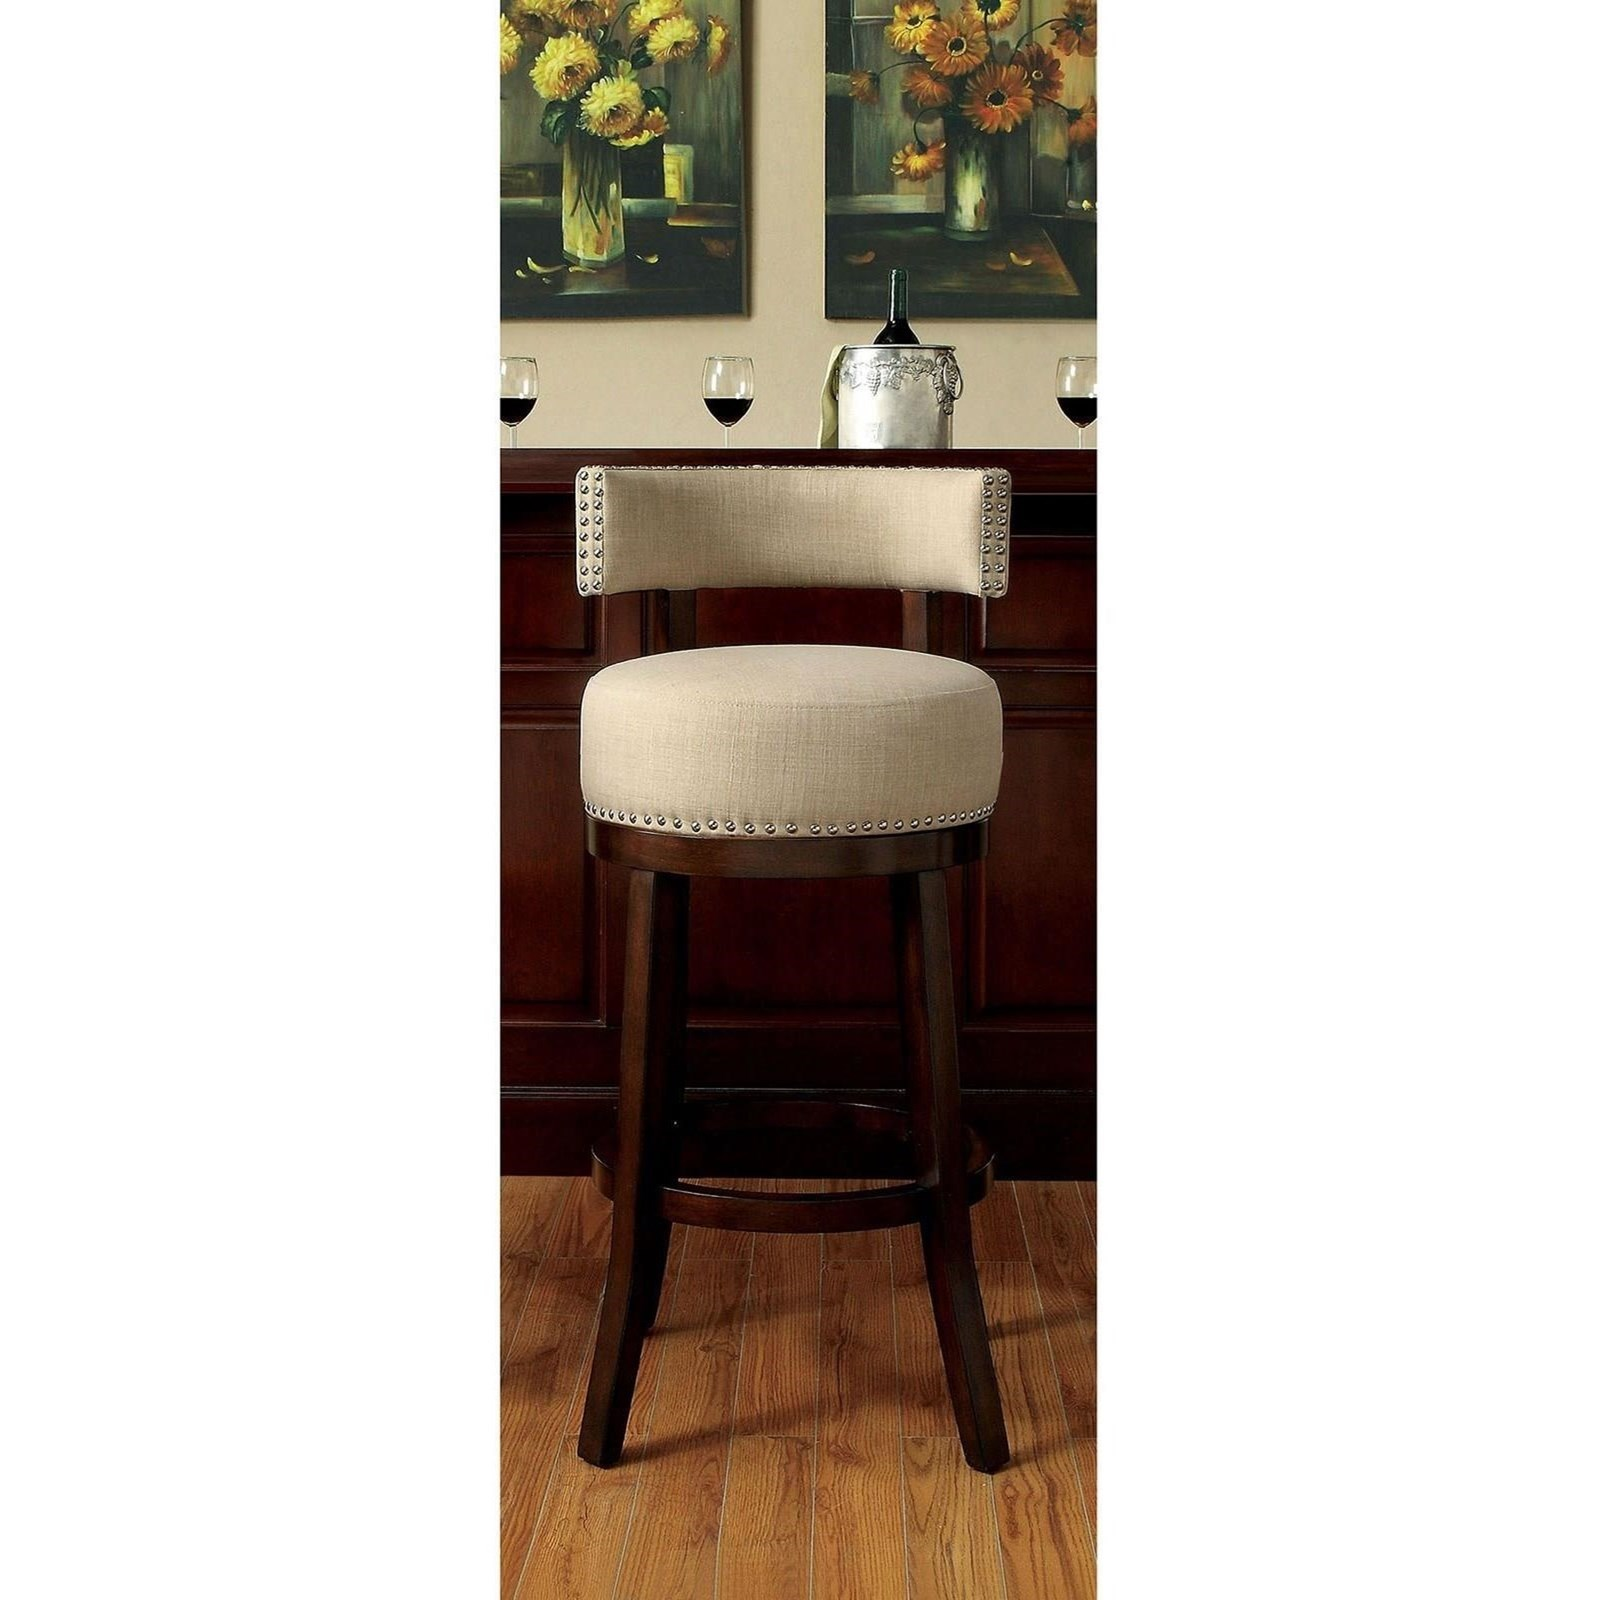 "Lynsey 29"" Bar Stool by Furniture of America at Nassau Furniture and Mattress"